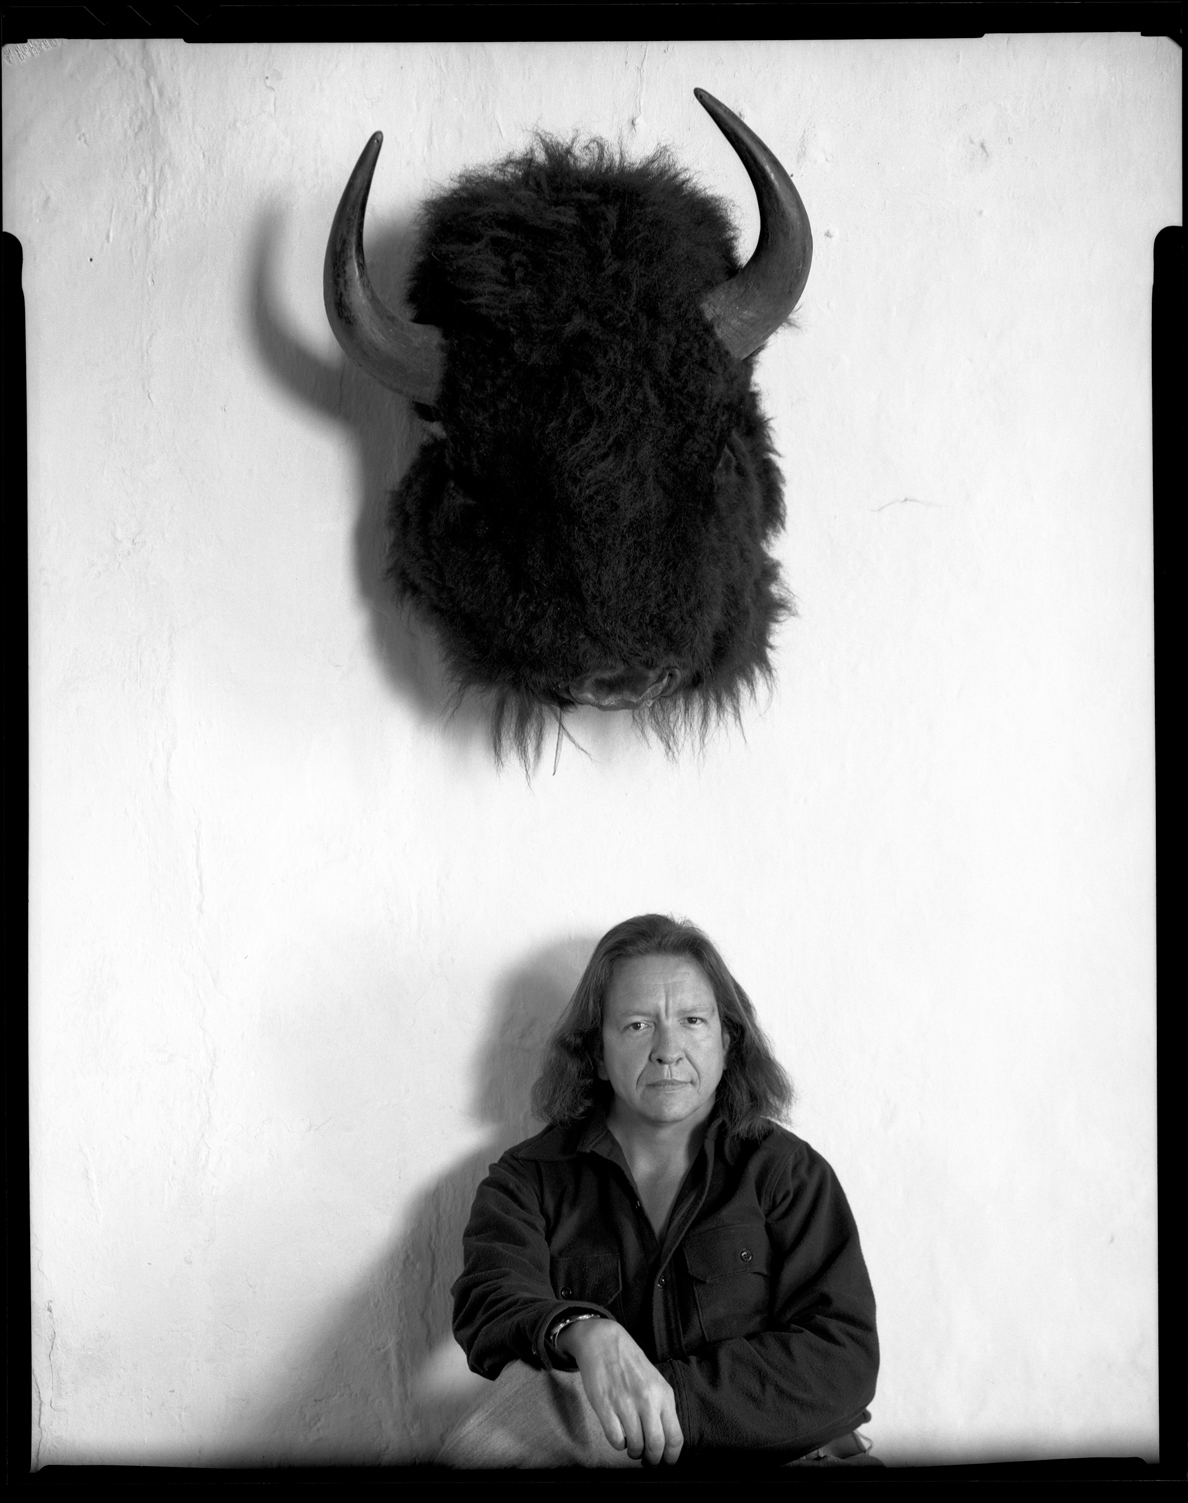 EJ Montini: Fritz Scholder was a genius who redefined 'Indian' art